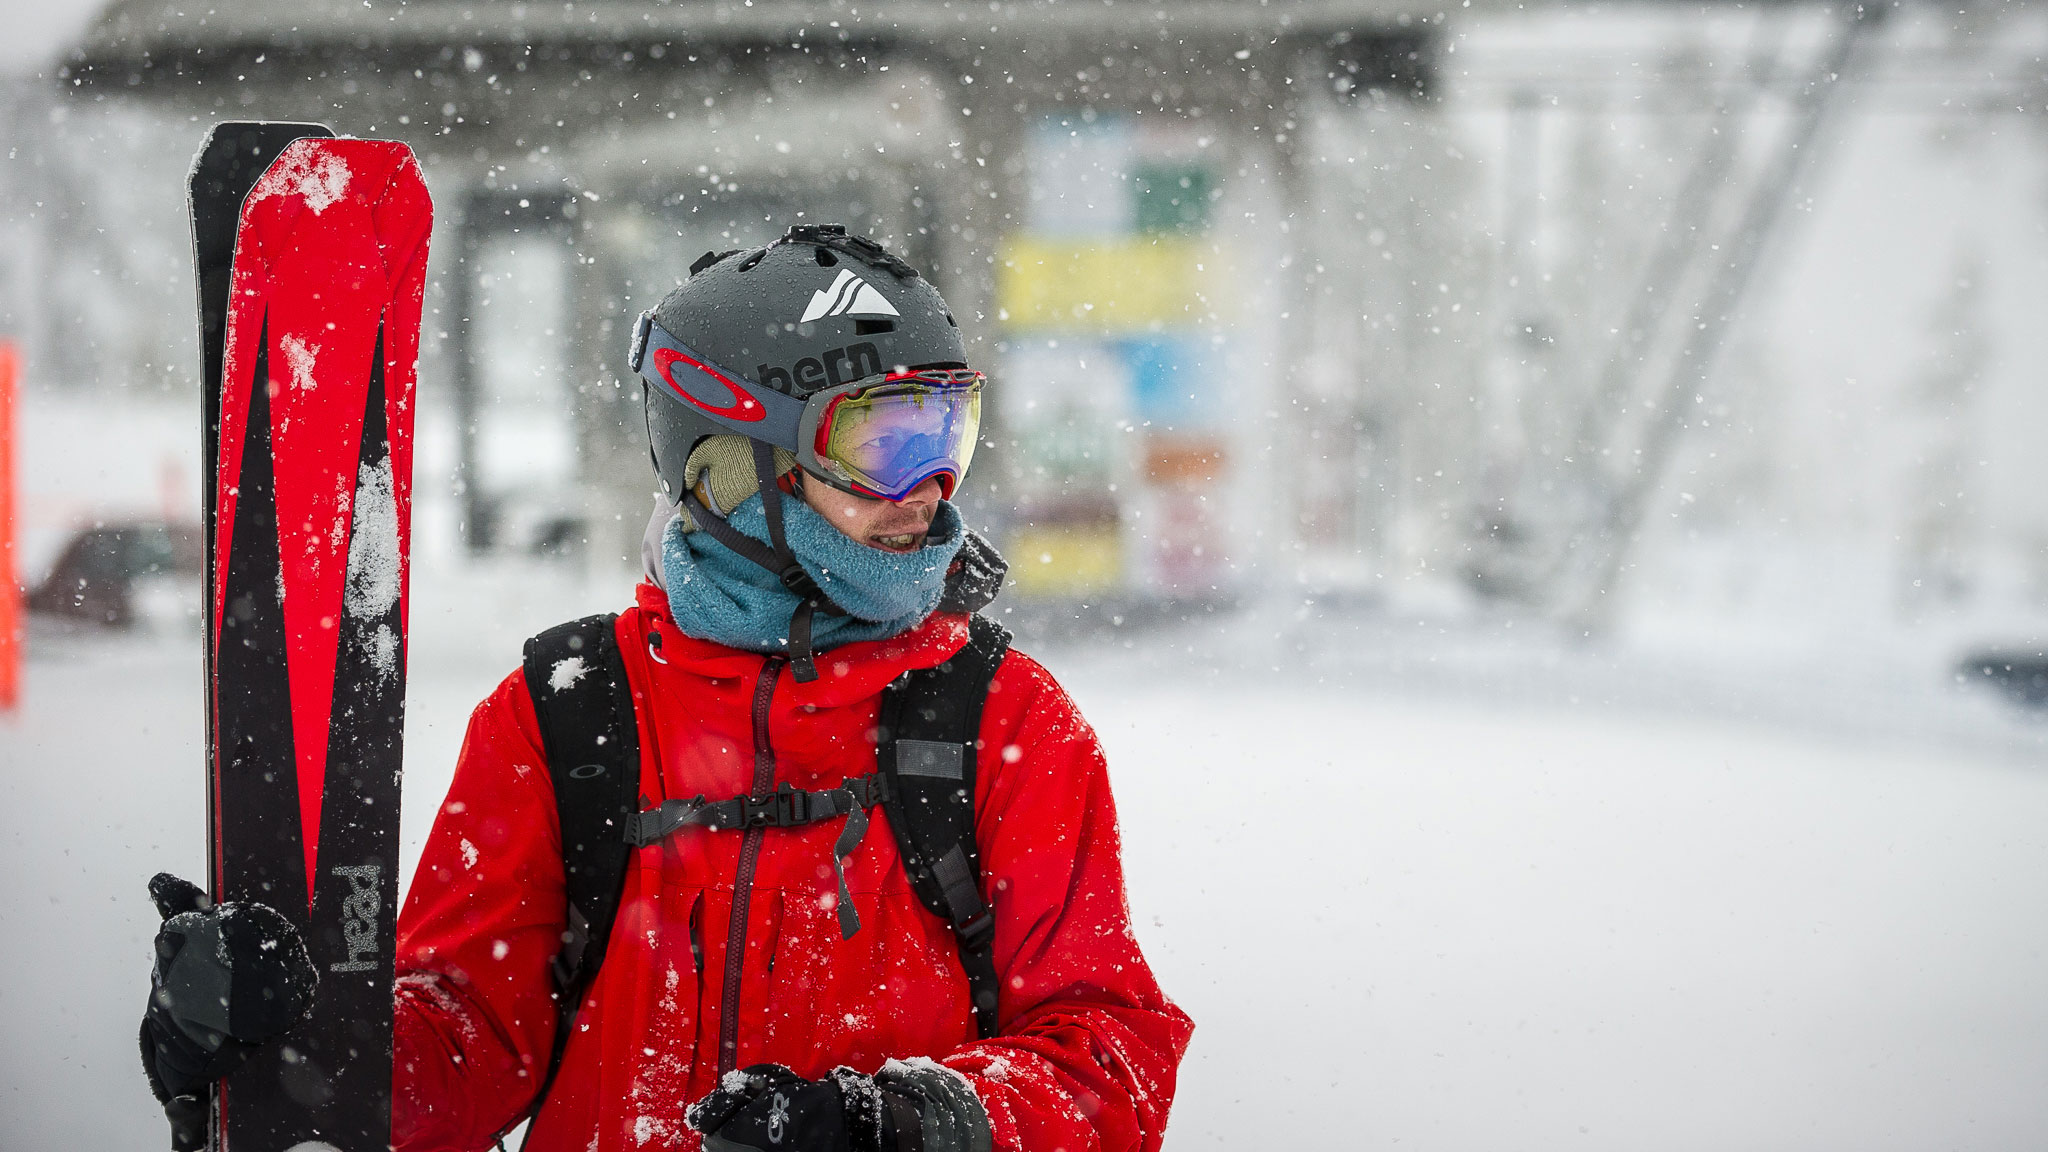 Timy Dutton, a pro skier and Squaw Valley native, was killed Tuesday in a skydiving accident.